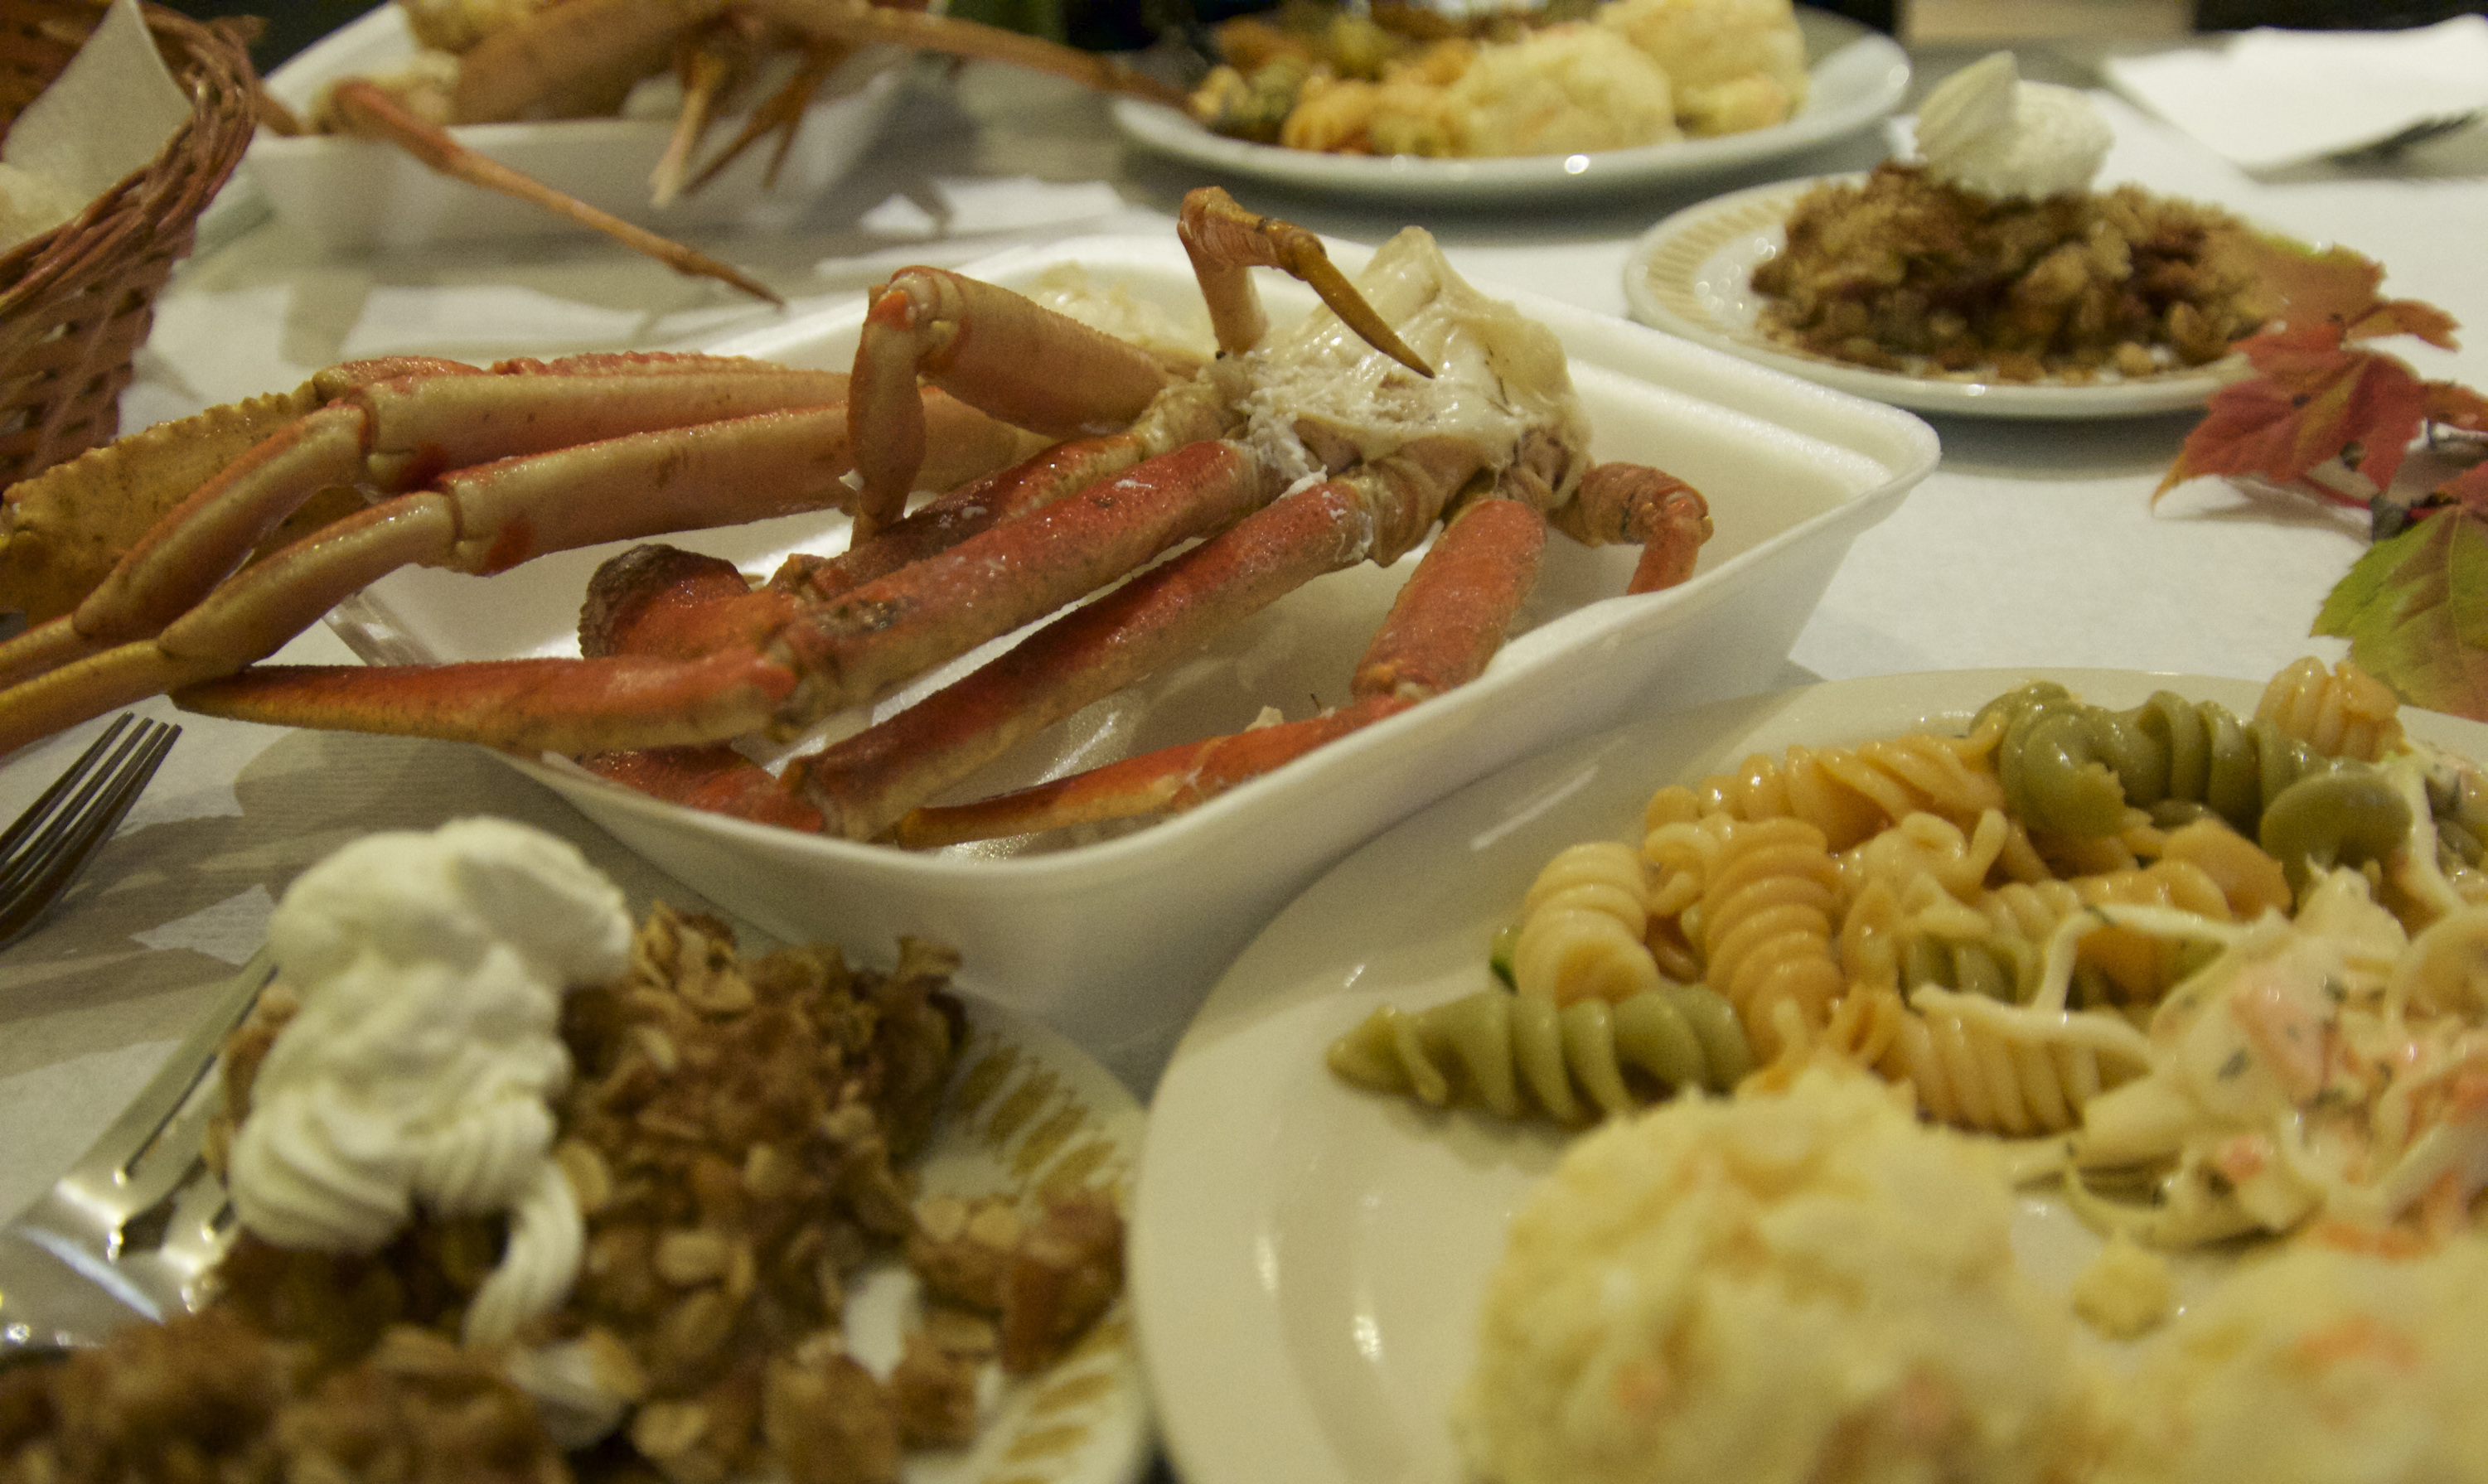 Crab dinner at North Shore fire hall.